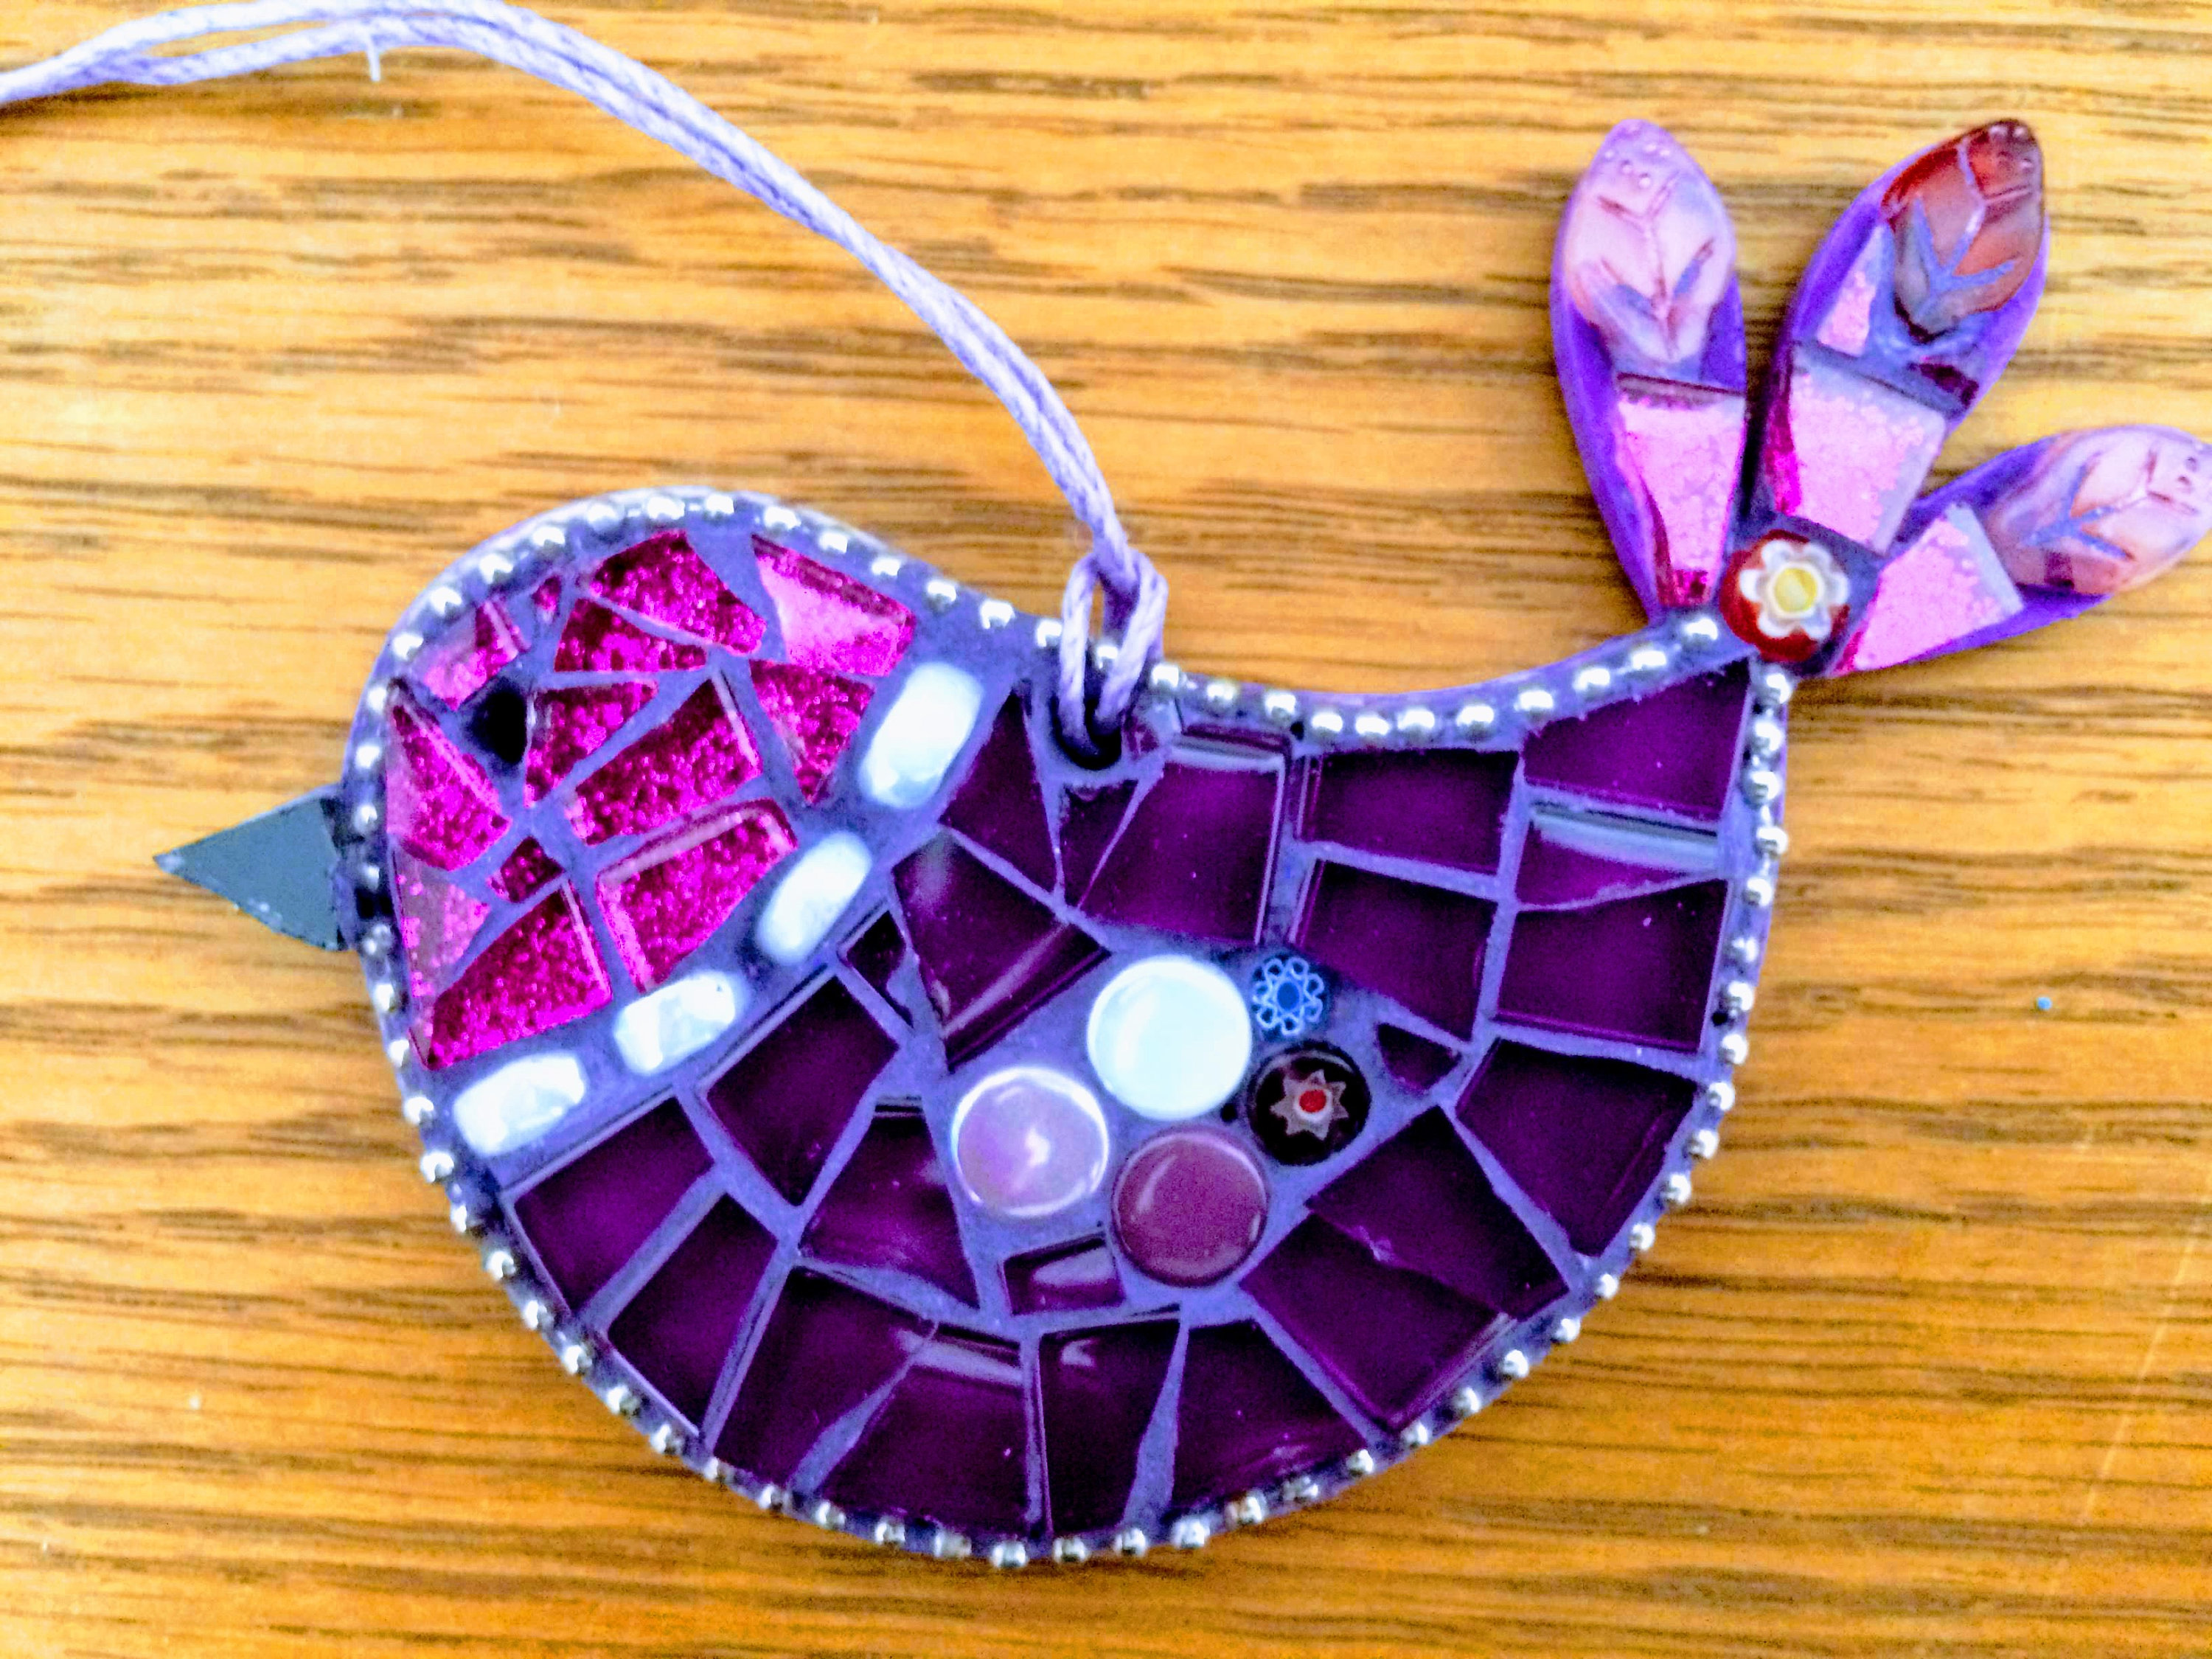 Handmade Glass Mosaic Pink And Purple Hanging Bird Ornament Unique Gift Idea Bird Wall Art Home Decor Gift For Her By Shelaghjanemosaics